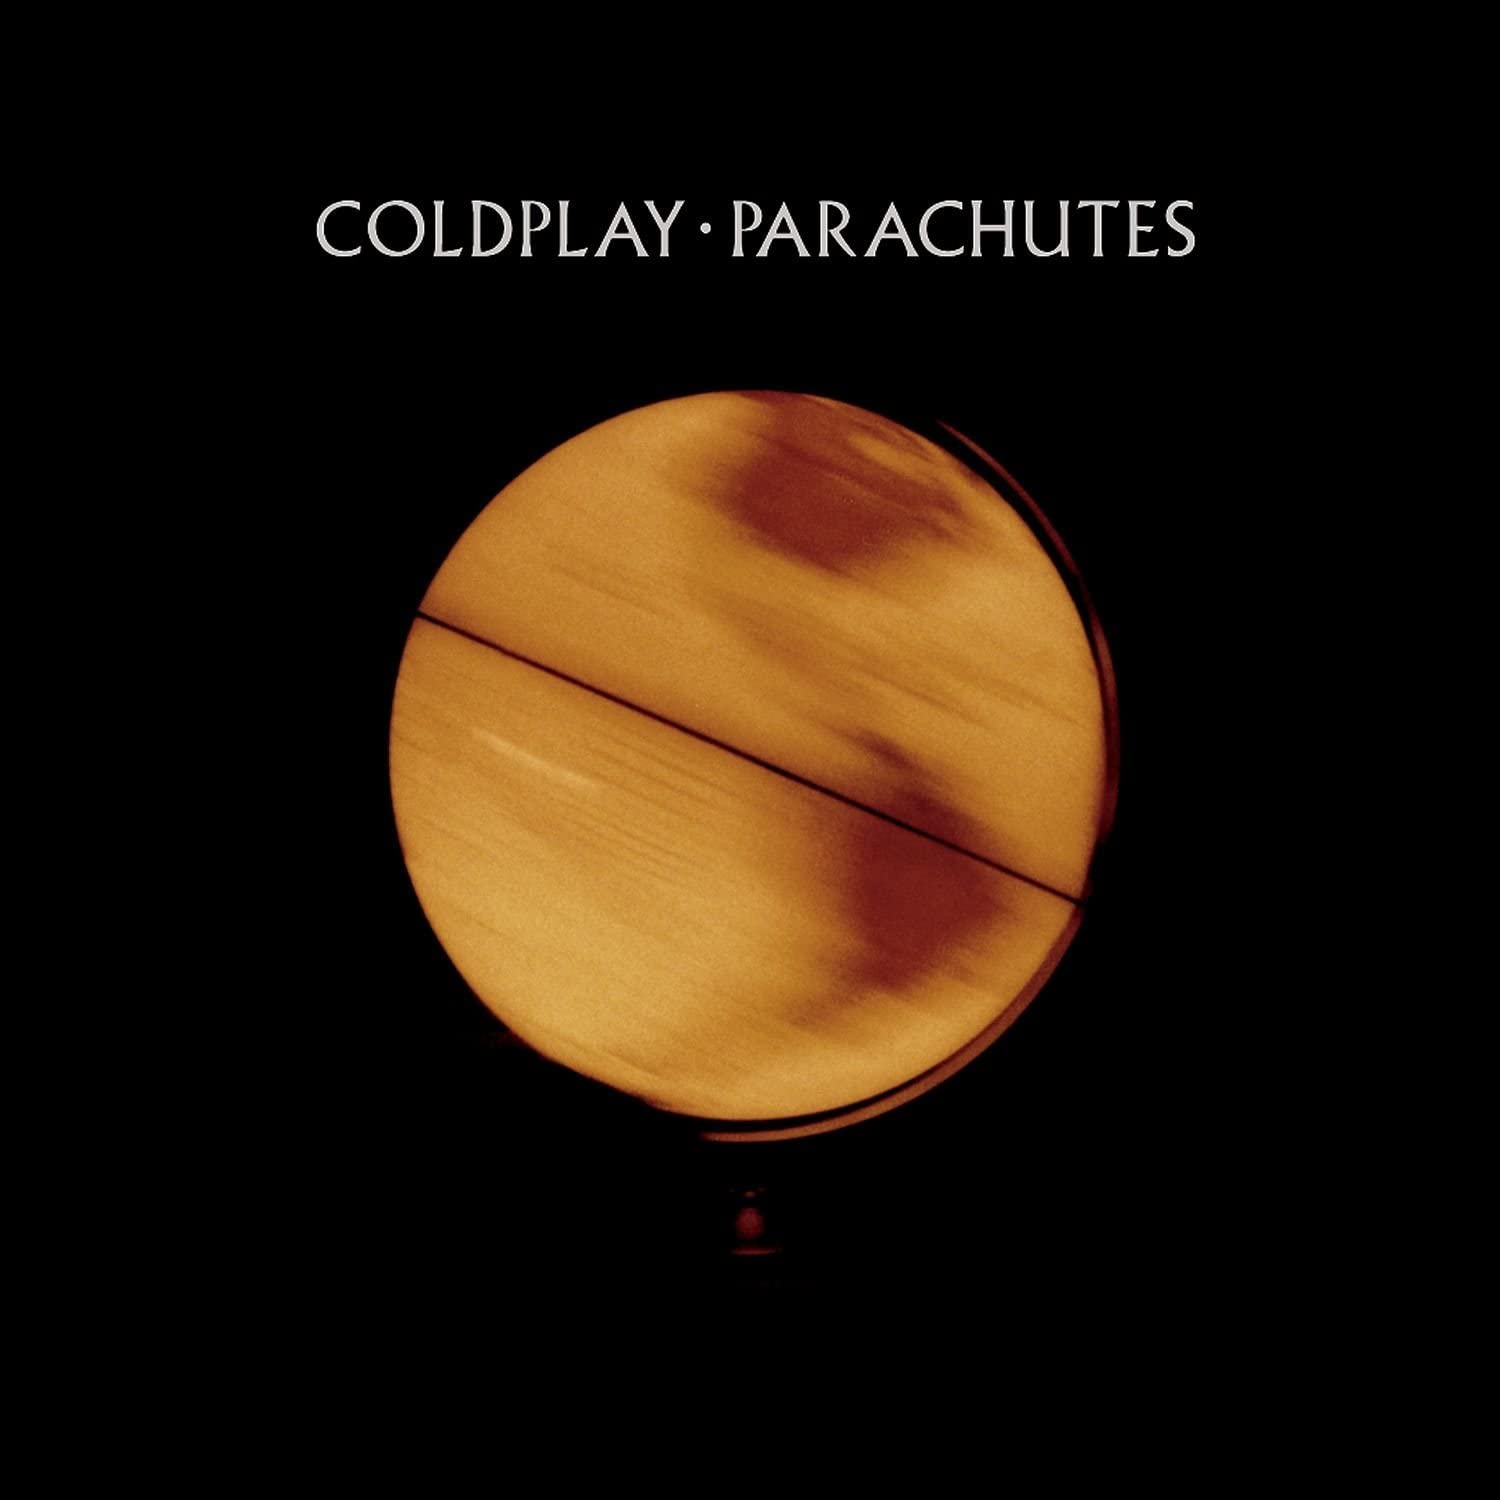 Coldplay [Disco de Vinil]: Amazon.com.br: CD e Vinil